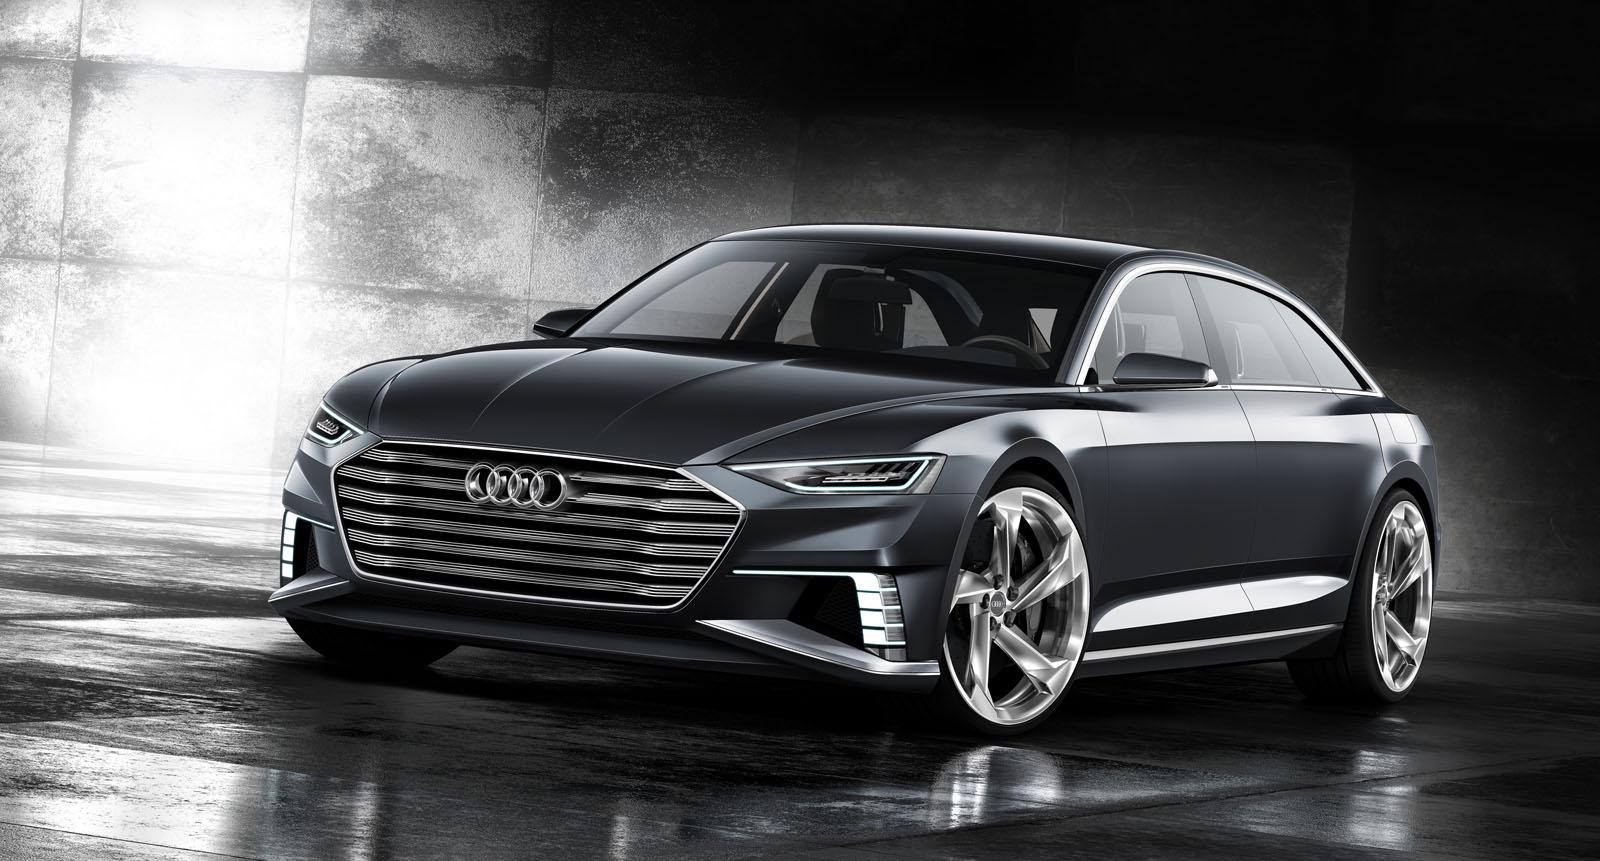 Audi Prologue Avant концепт